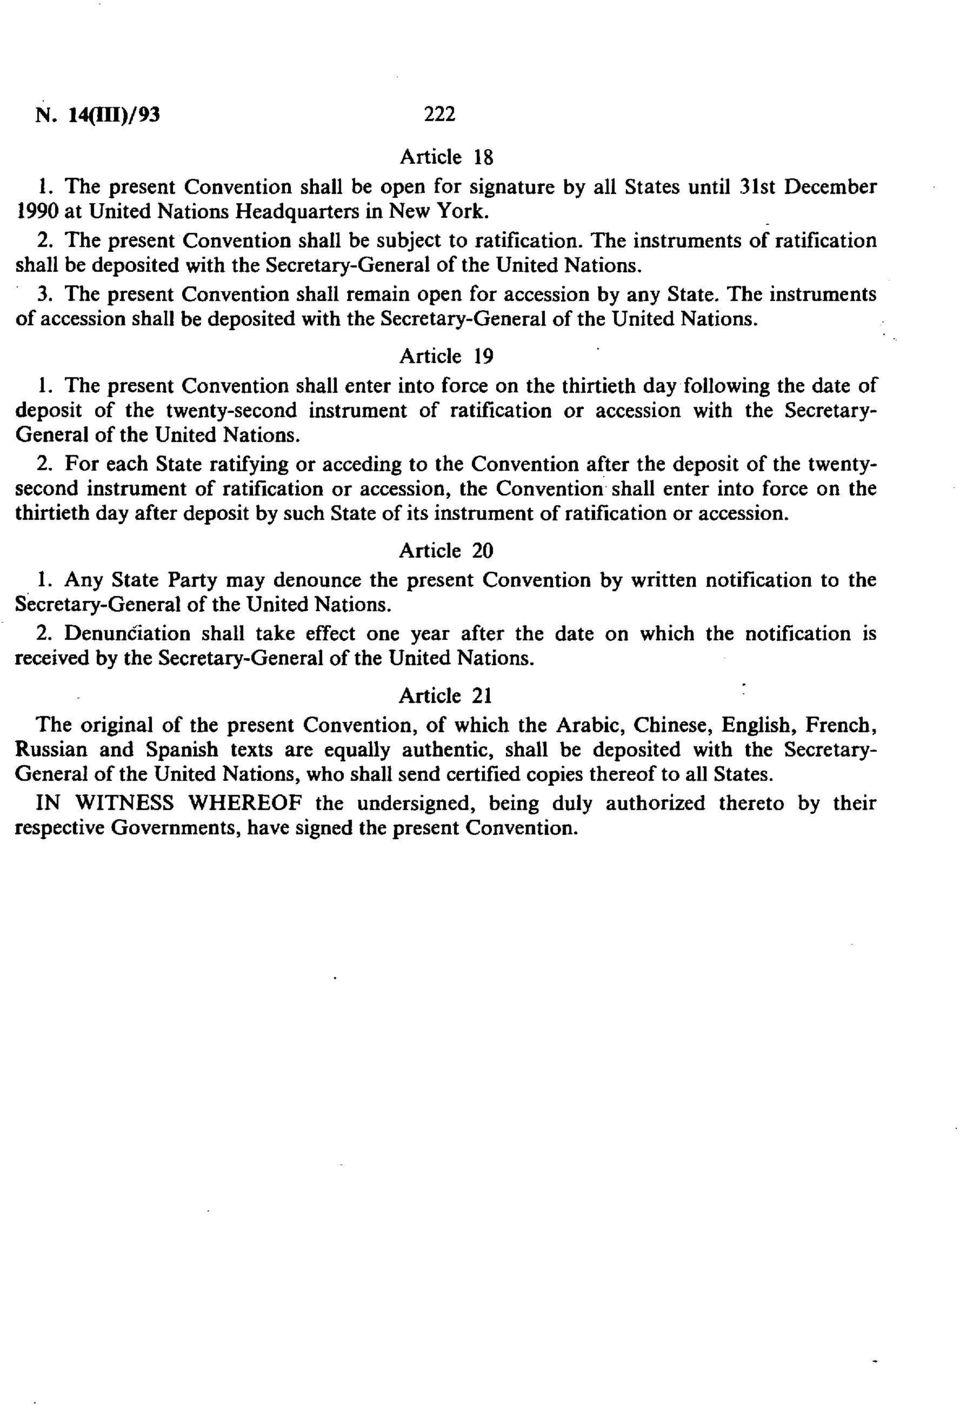 The instruments of accession shall be deposited with the Secretary-General of the United Nations. Article 19 1.